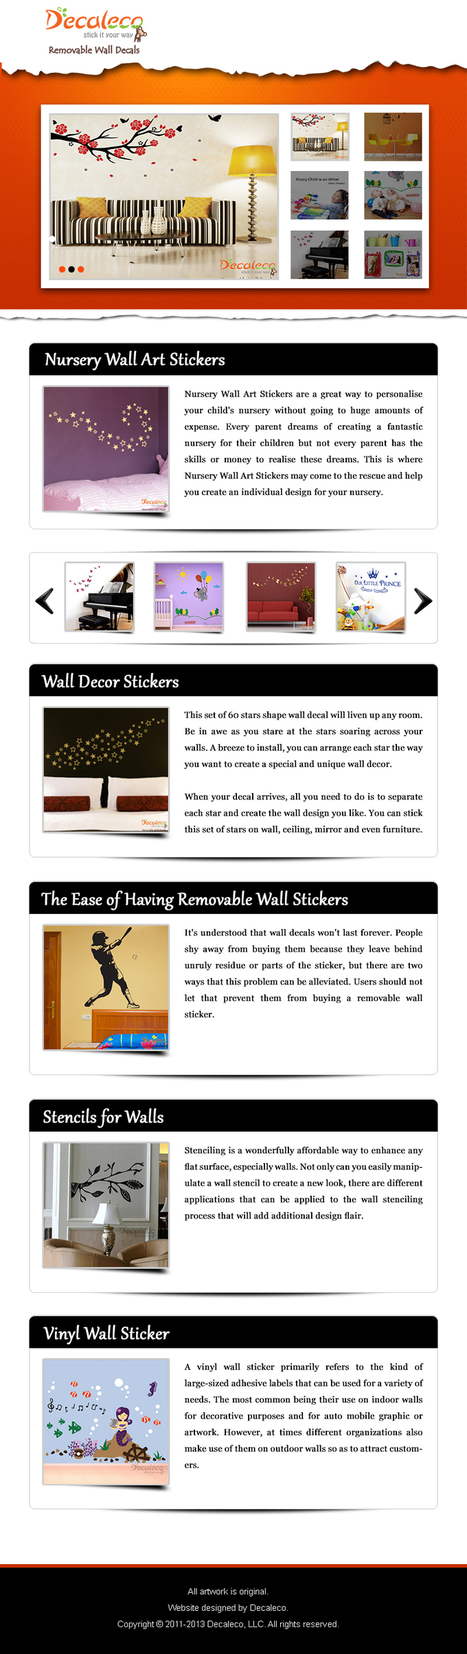 wall decor stickers | Cheap Wall Stickers | Scoop.it